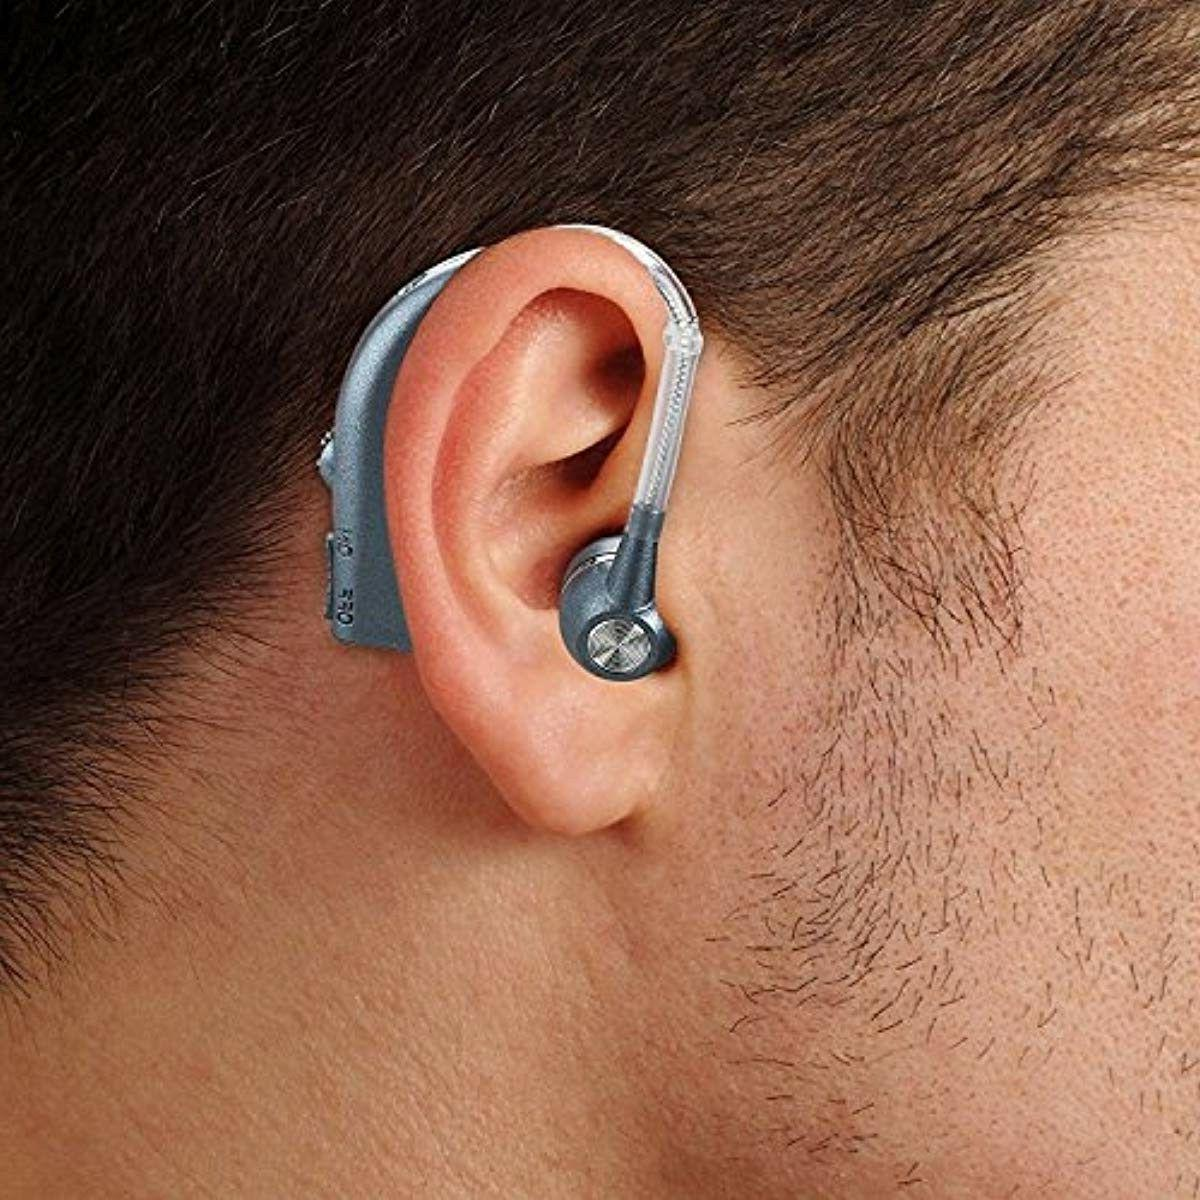 Rechargeable Hearing Sound Aid